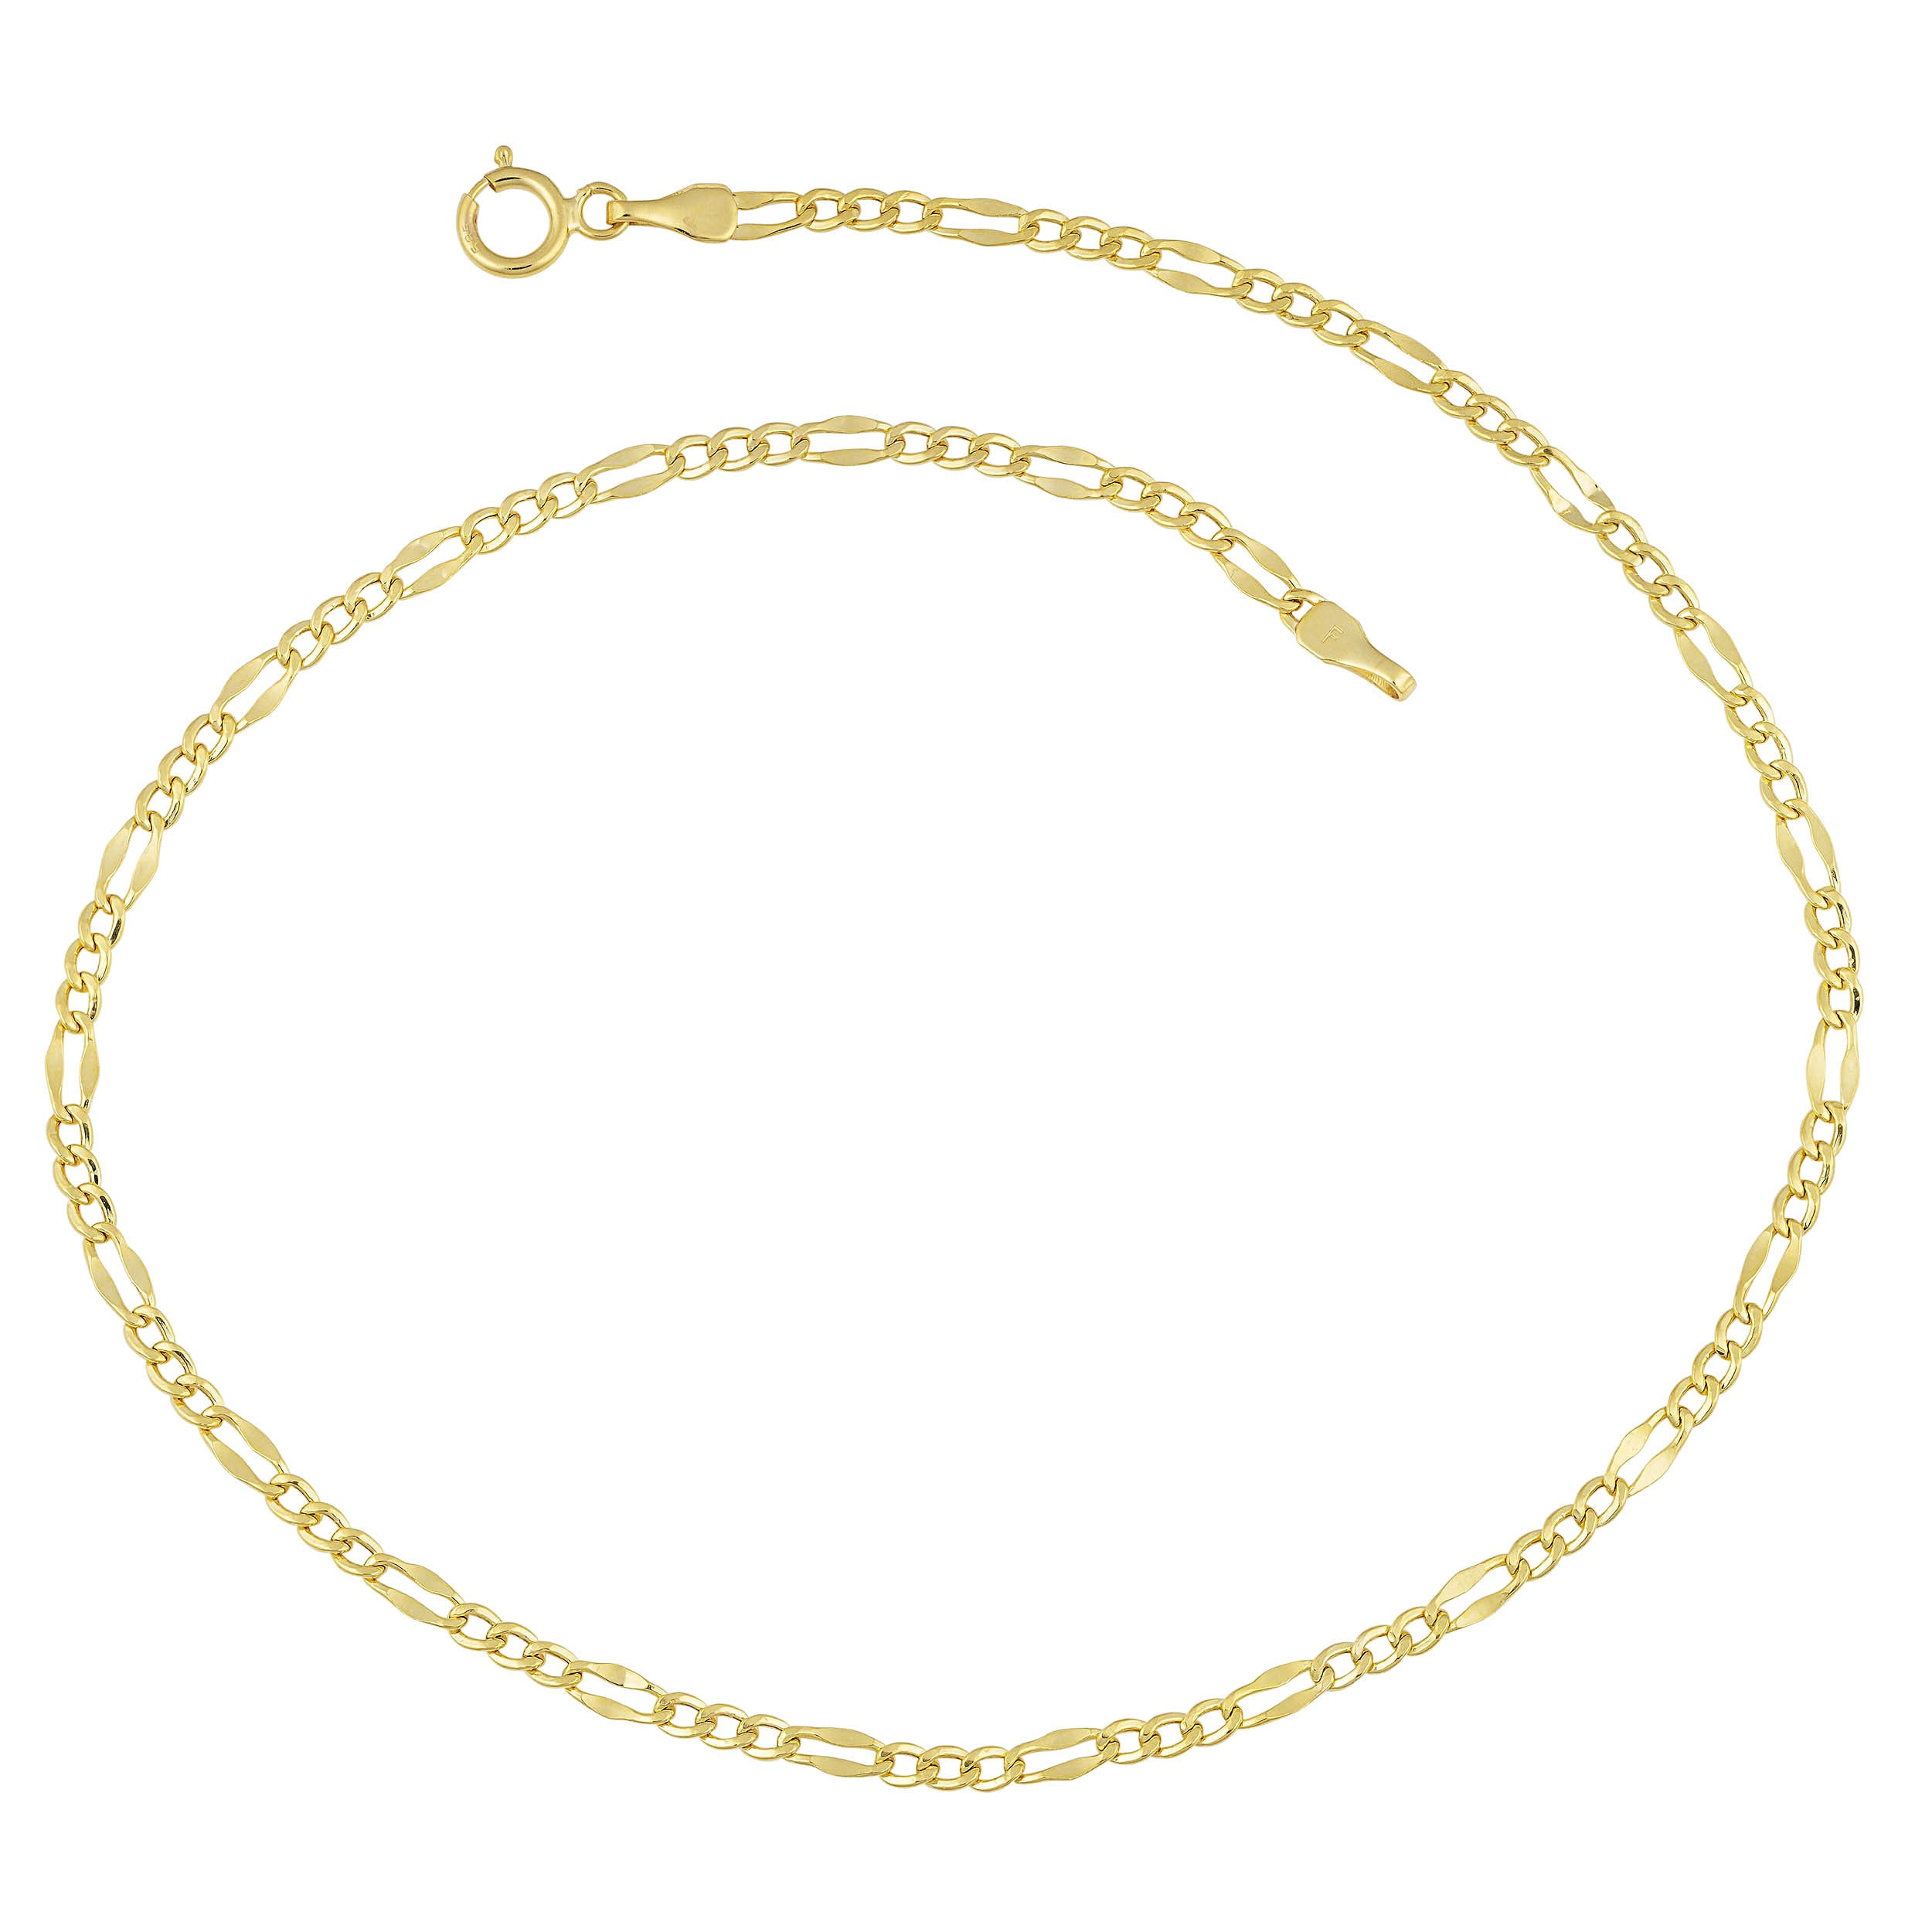 anklets ankle anklet jewels bracelet elle by gold singapore karat product archives chain yellow category thick